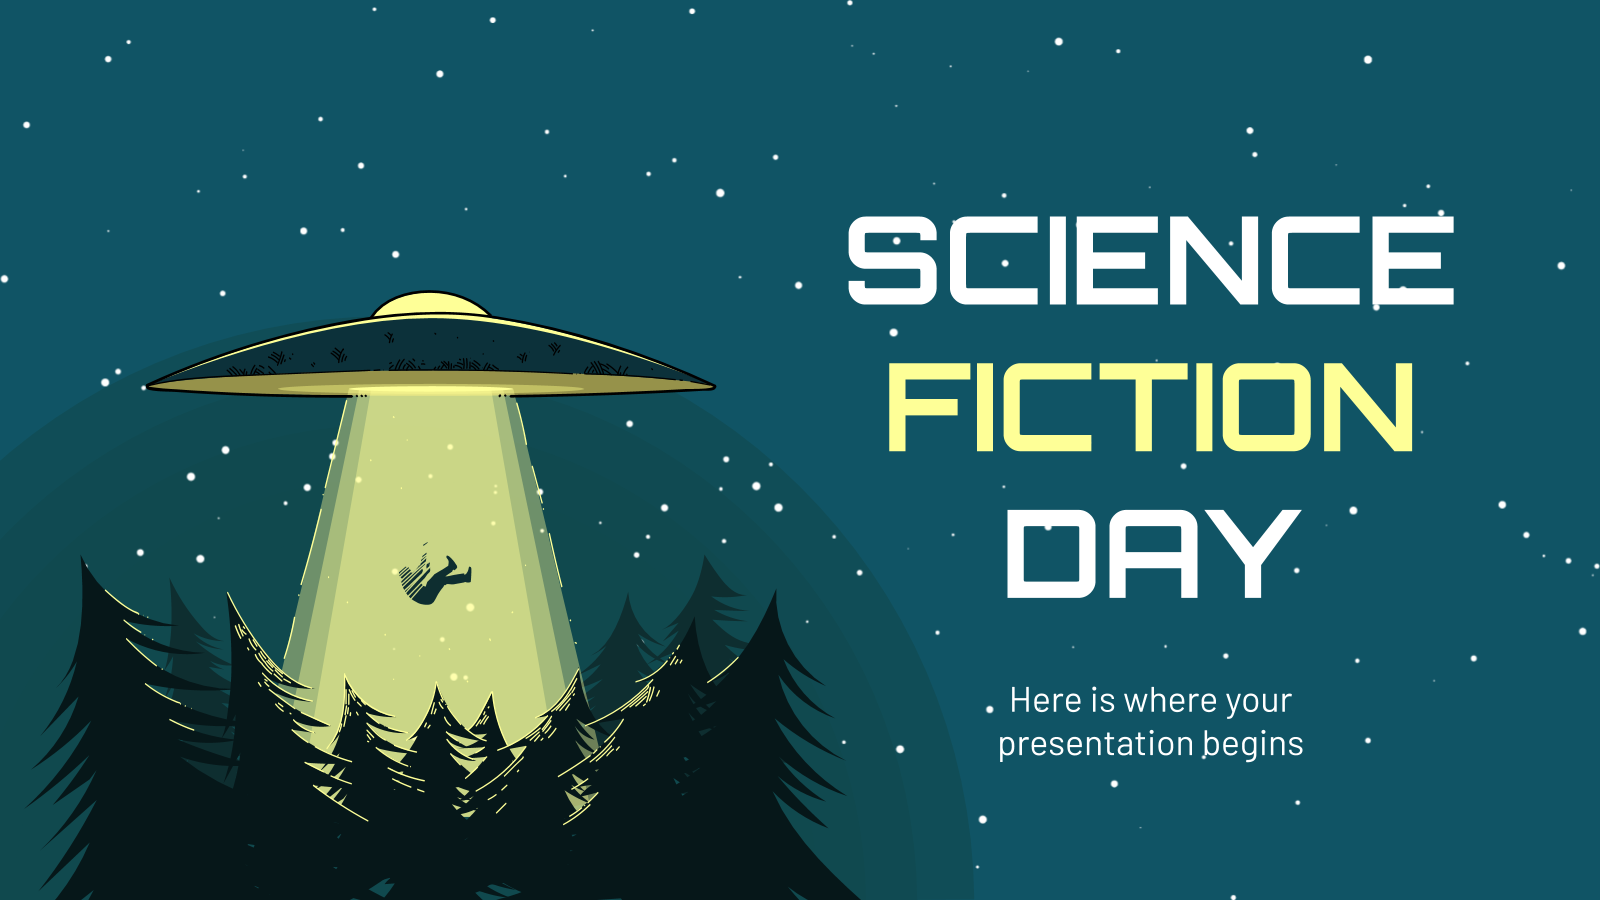 Science Fiction Day presentation template